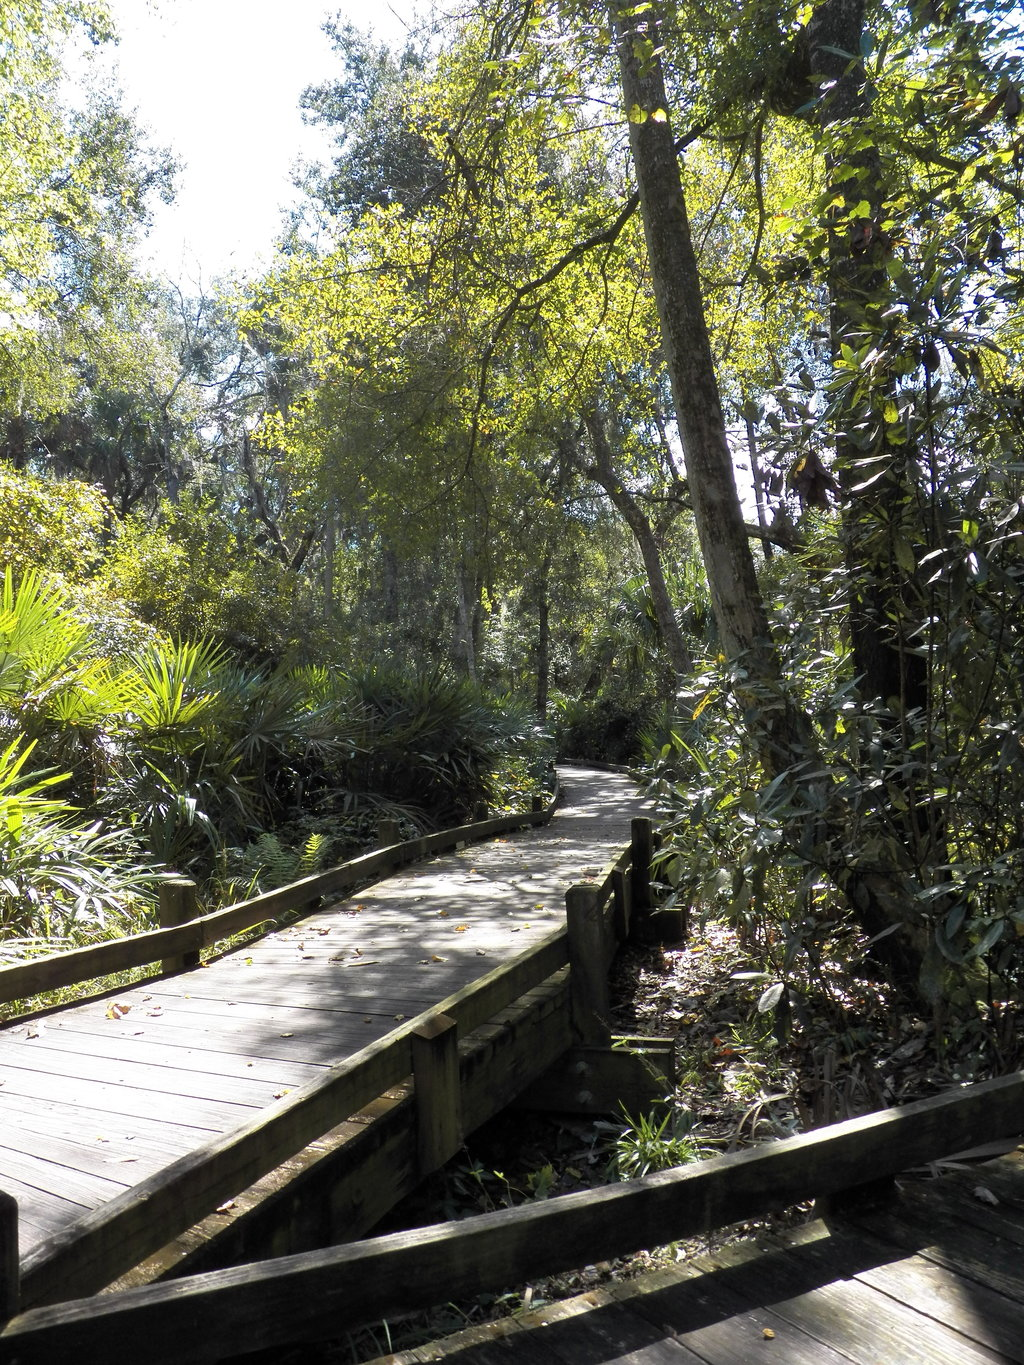 Things To Do in Ocala National Forest, Restaurants in Ocala National Forest